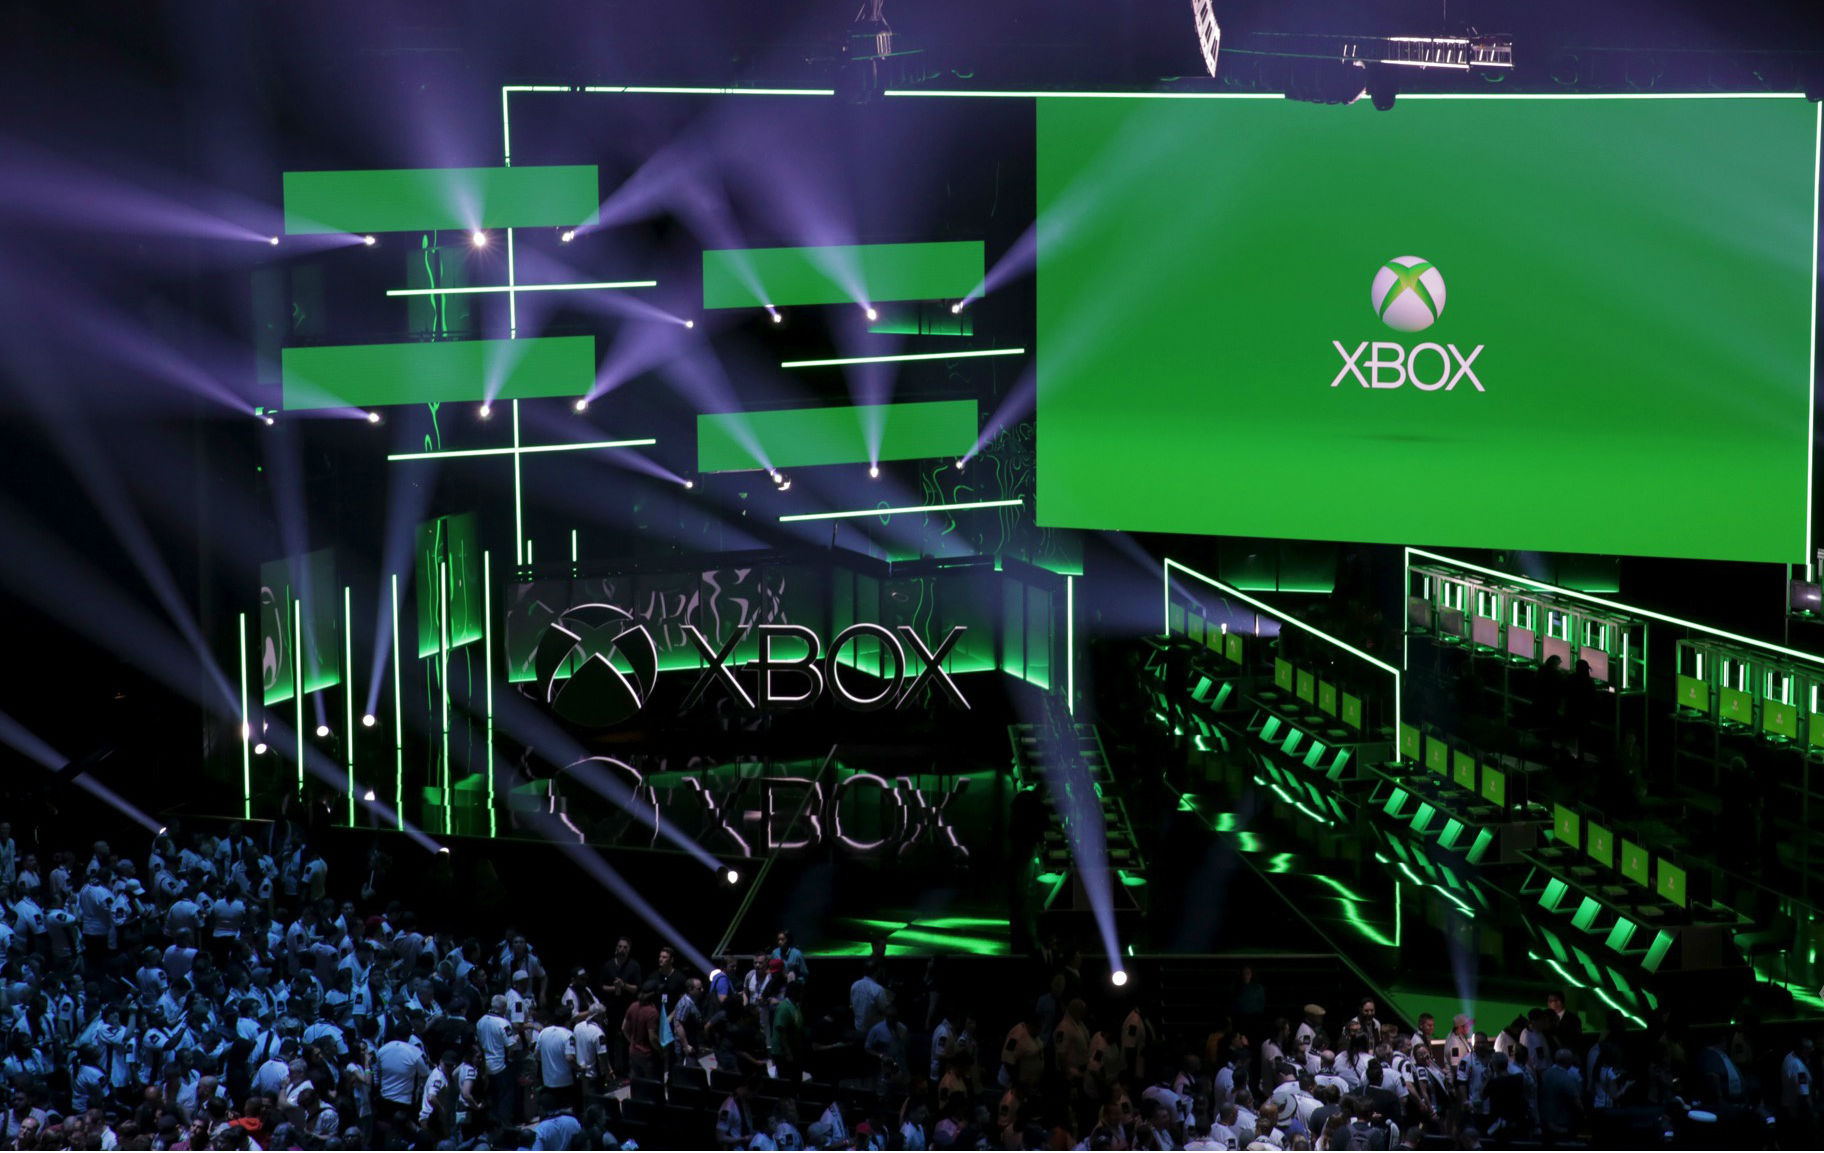 Next-gen expectations overshadowed E3 | Opinion